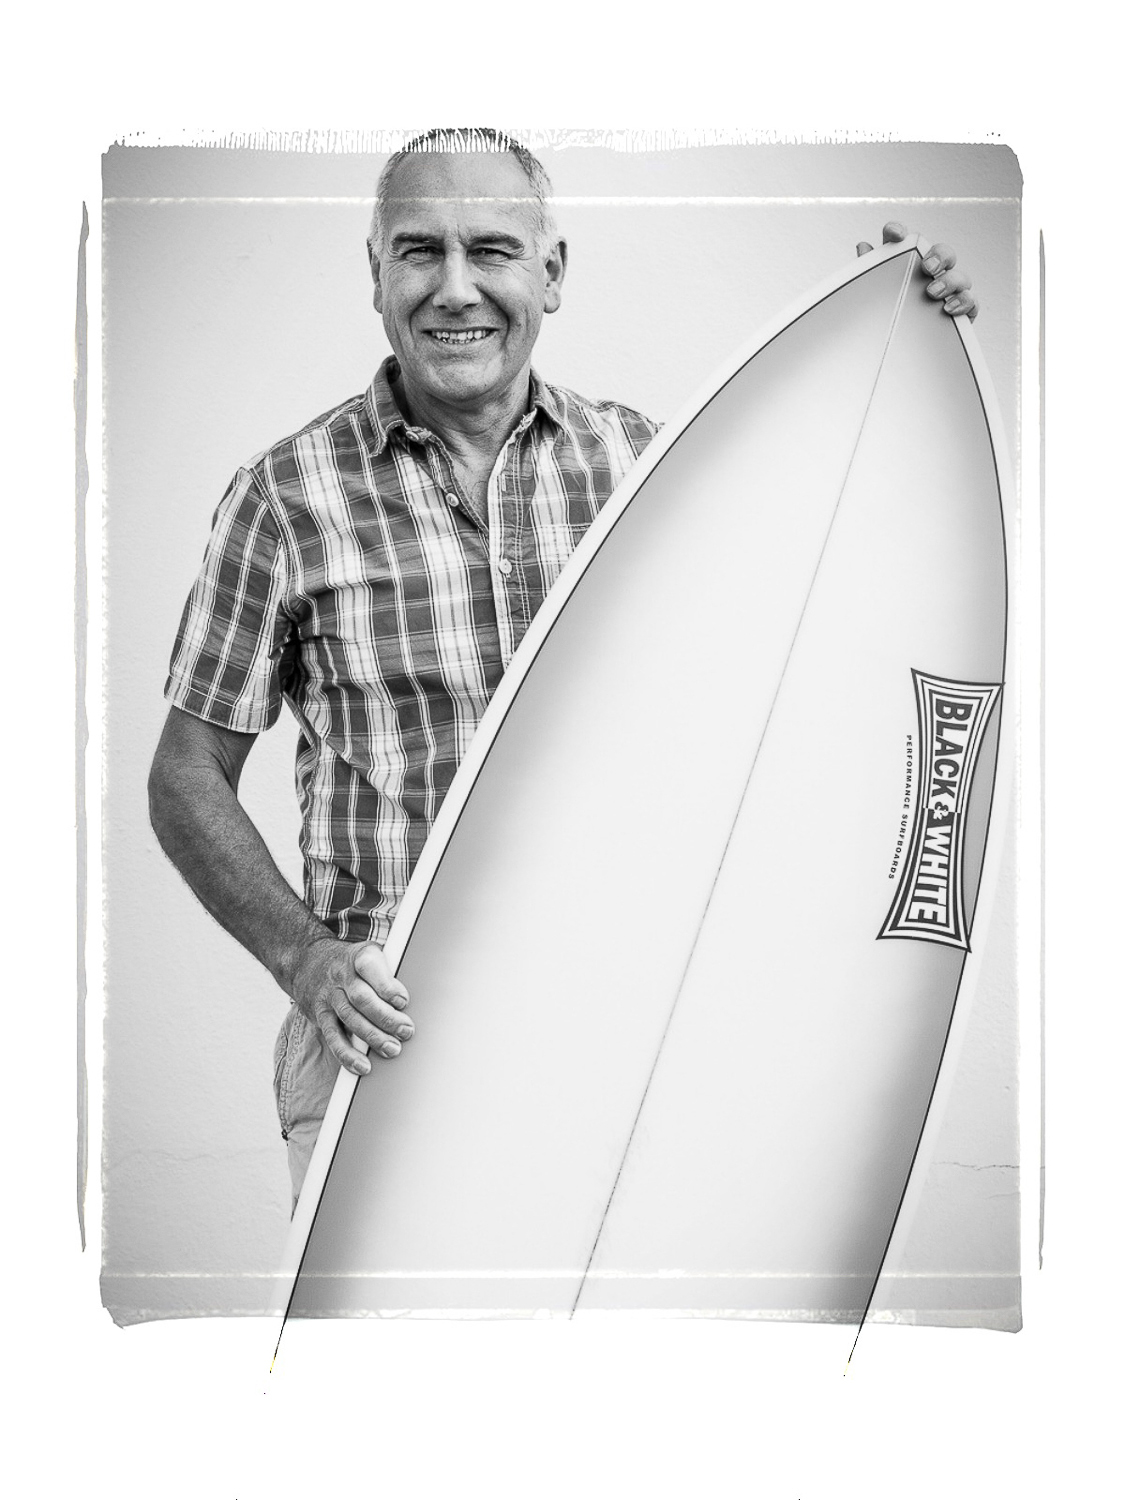 Paul Waters, surfboard shaper